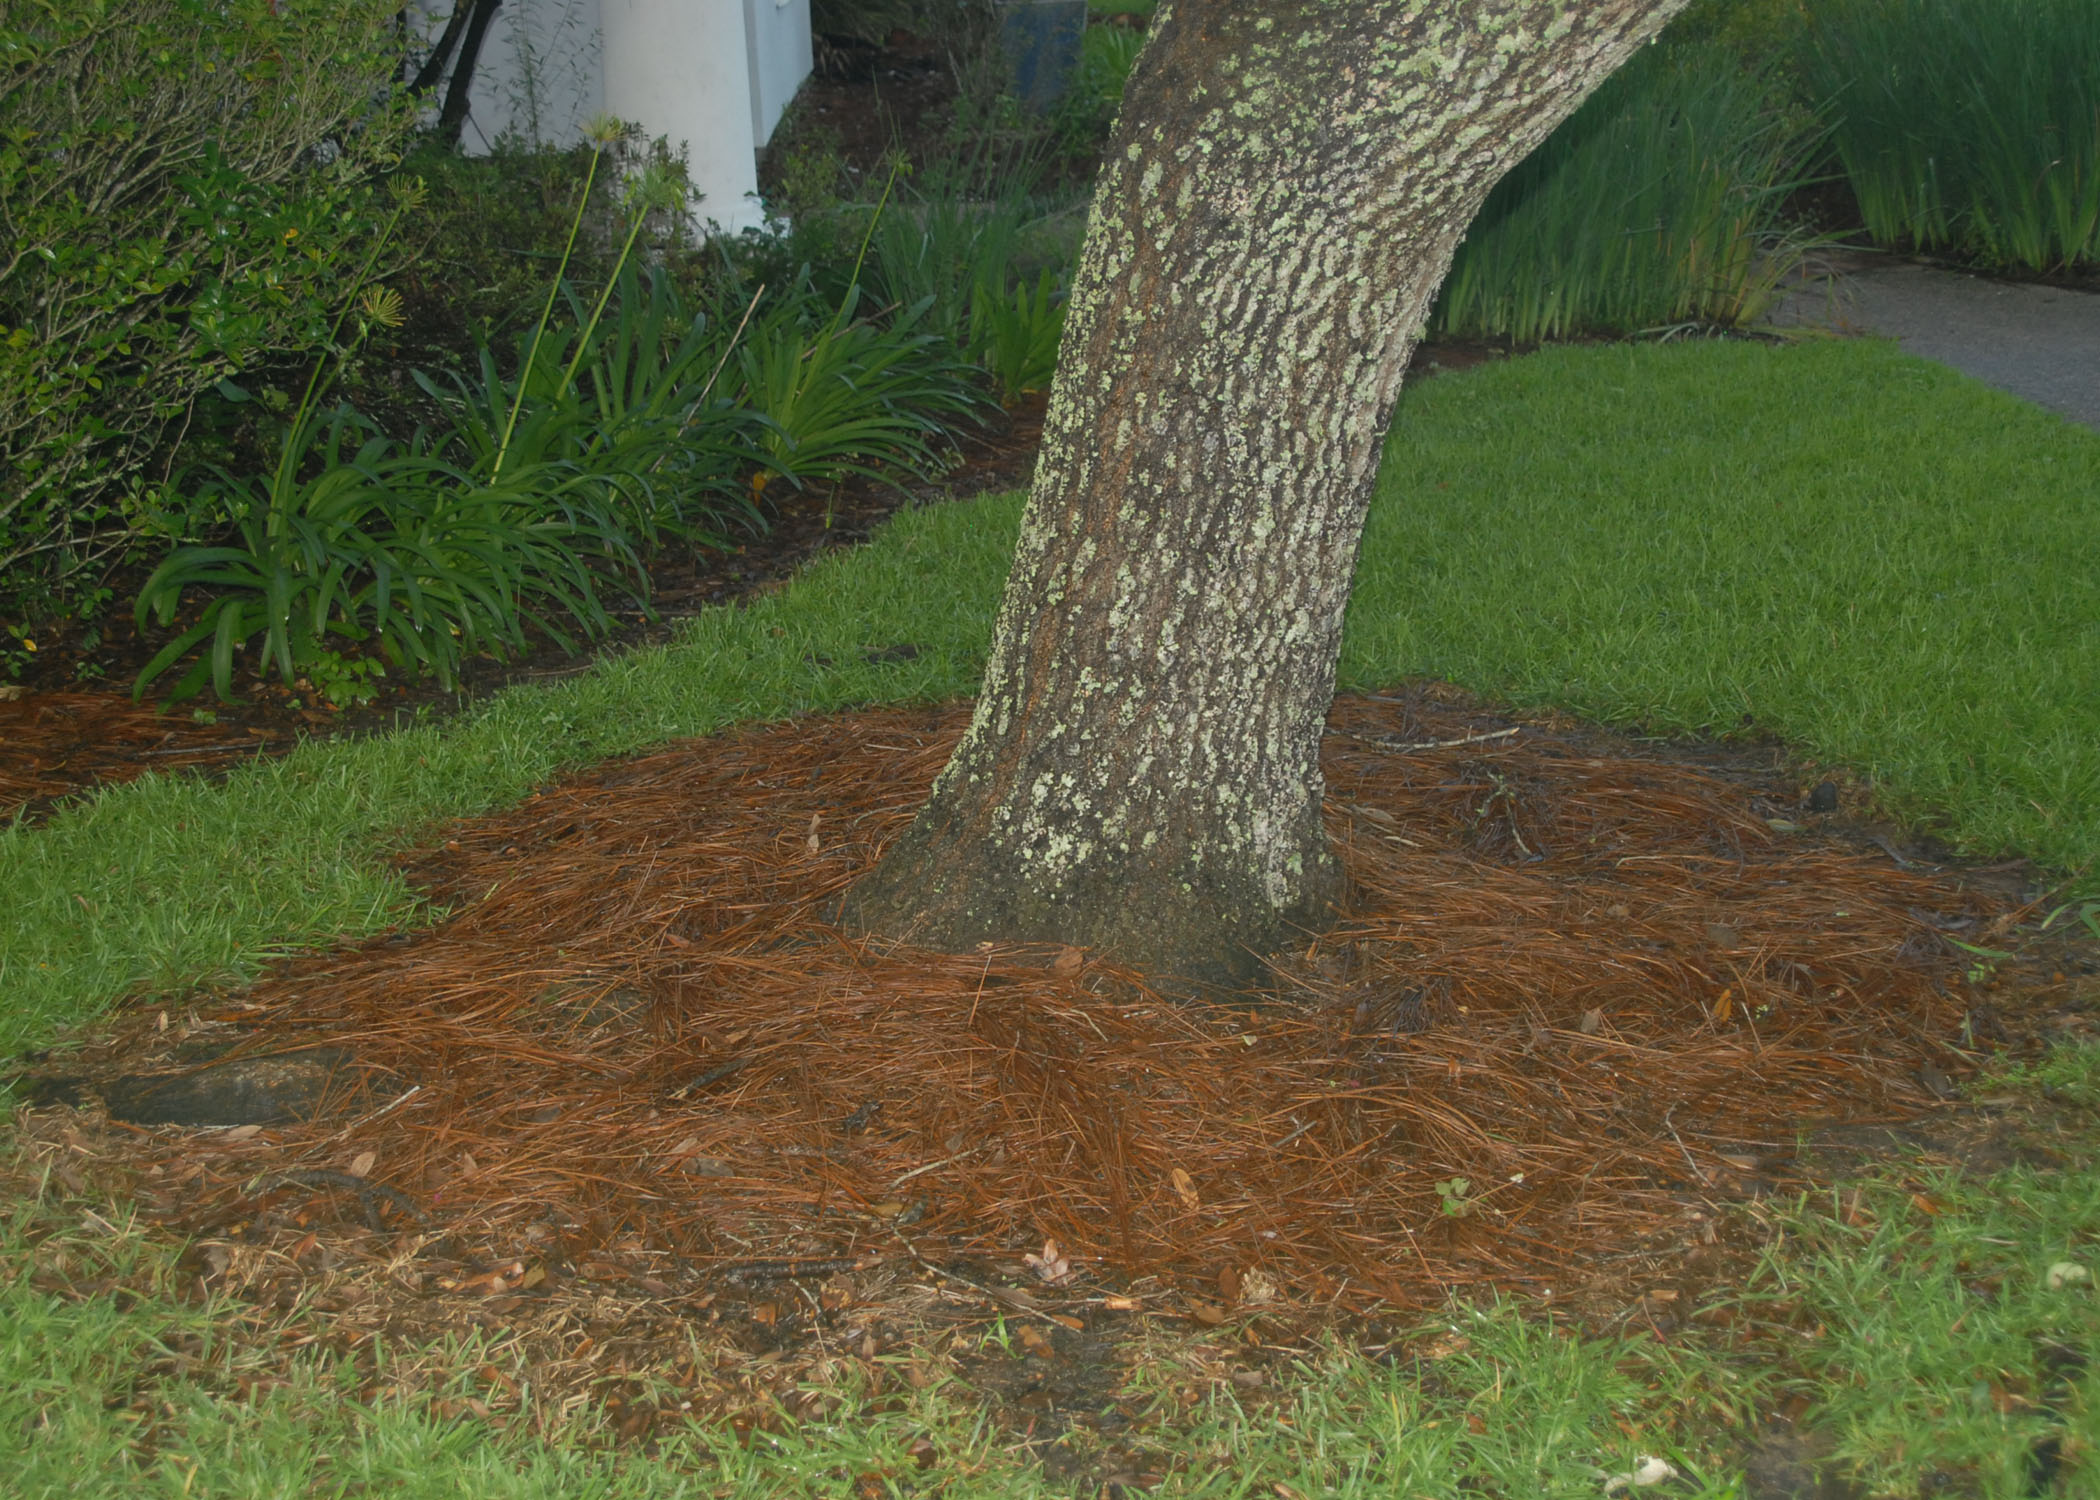 mulch replaces ground cover.jpg thumbnail